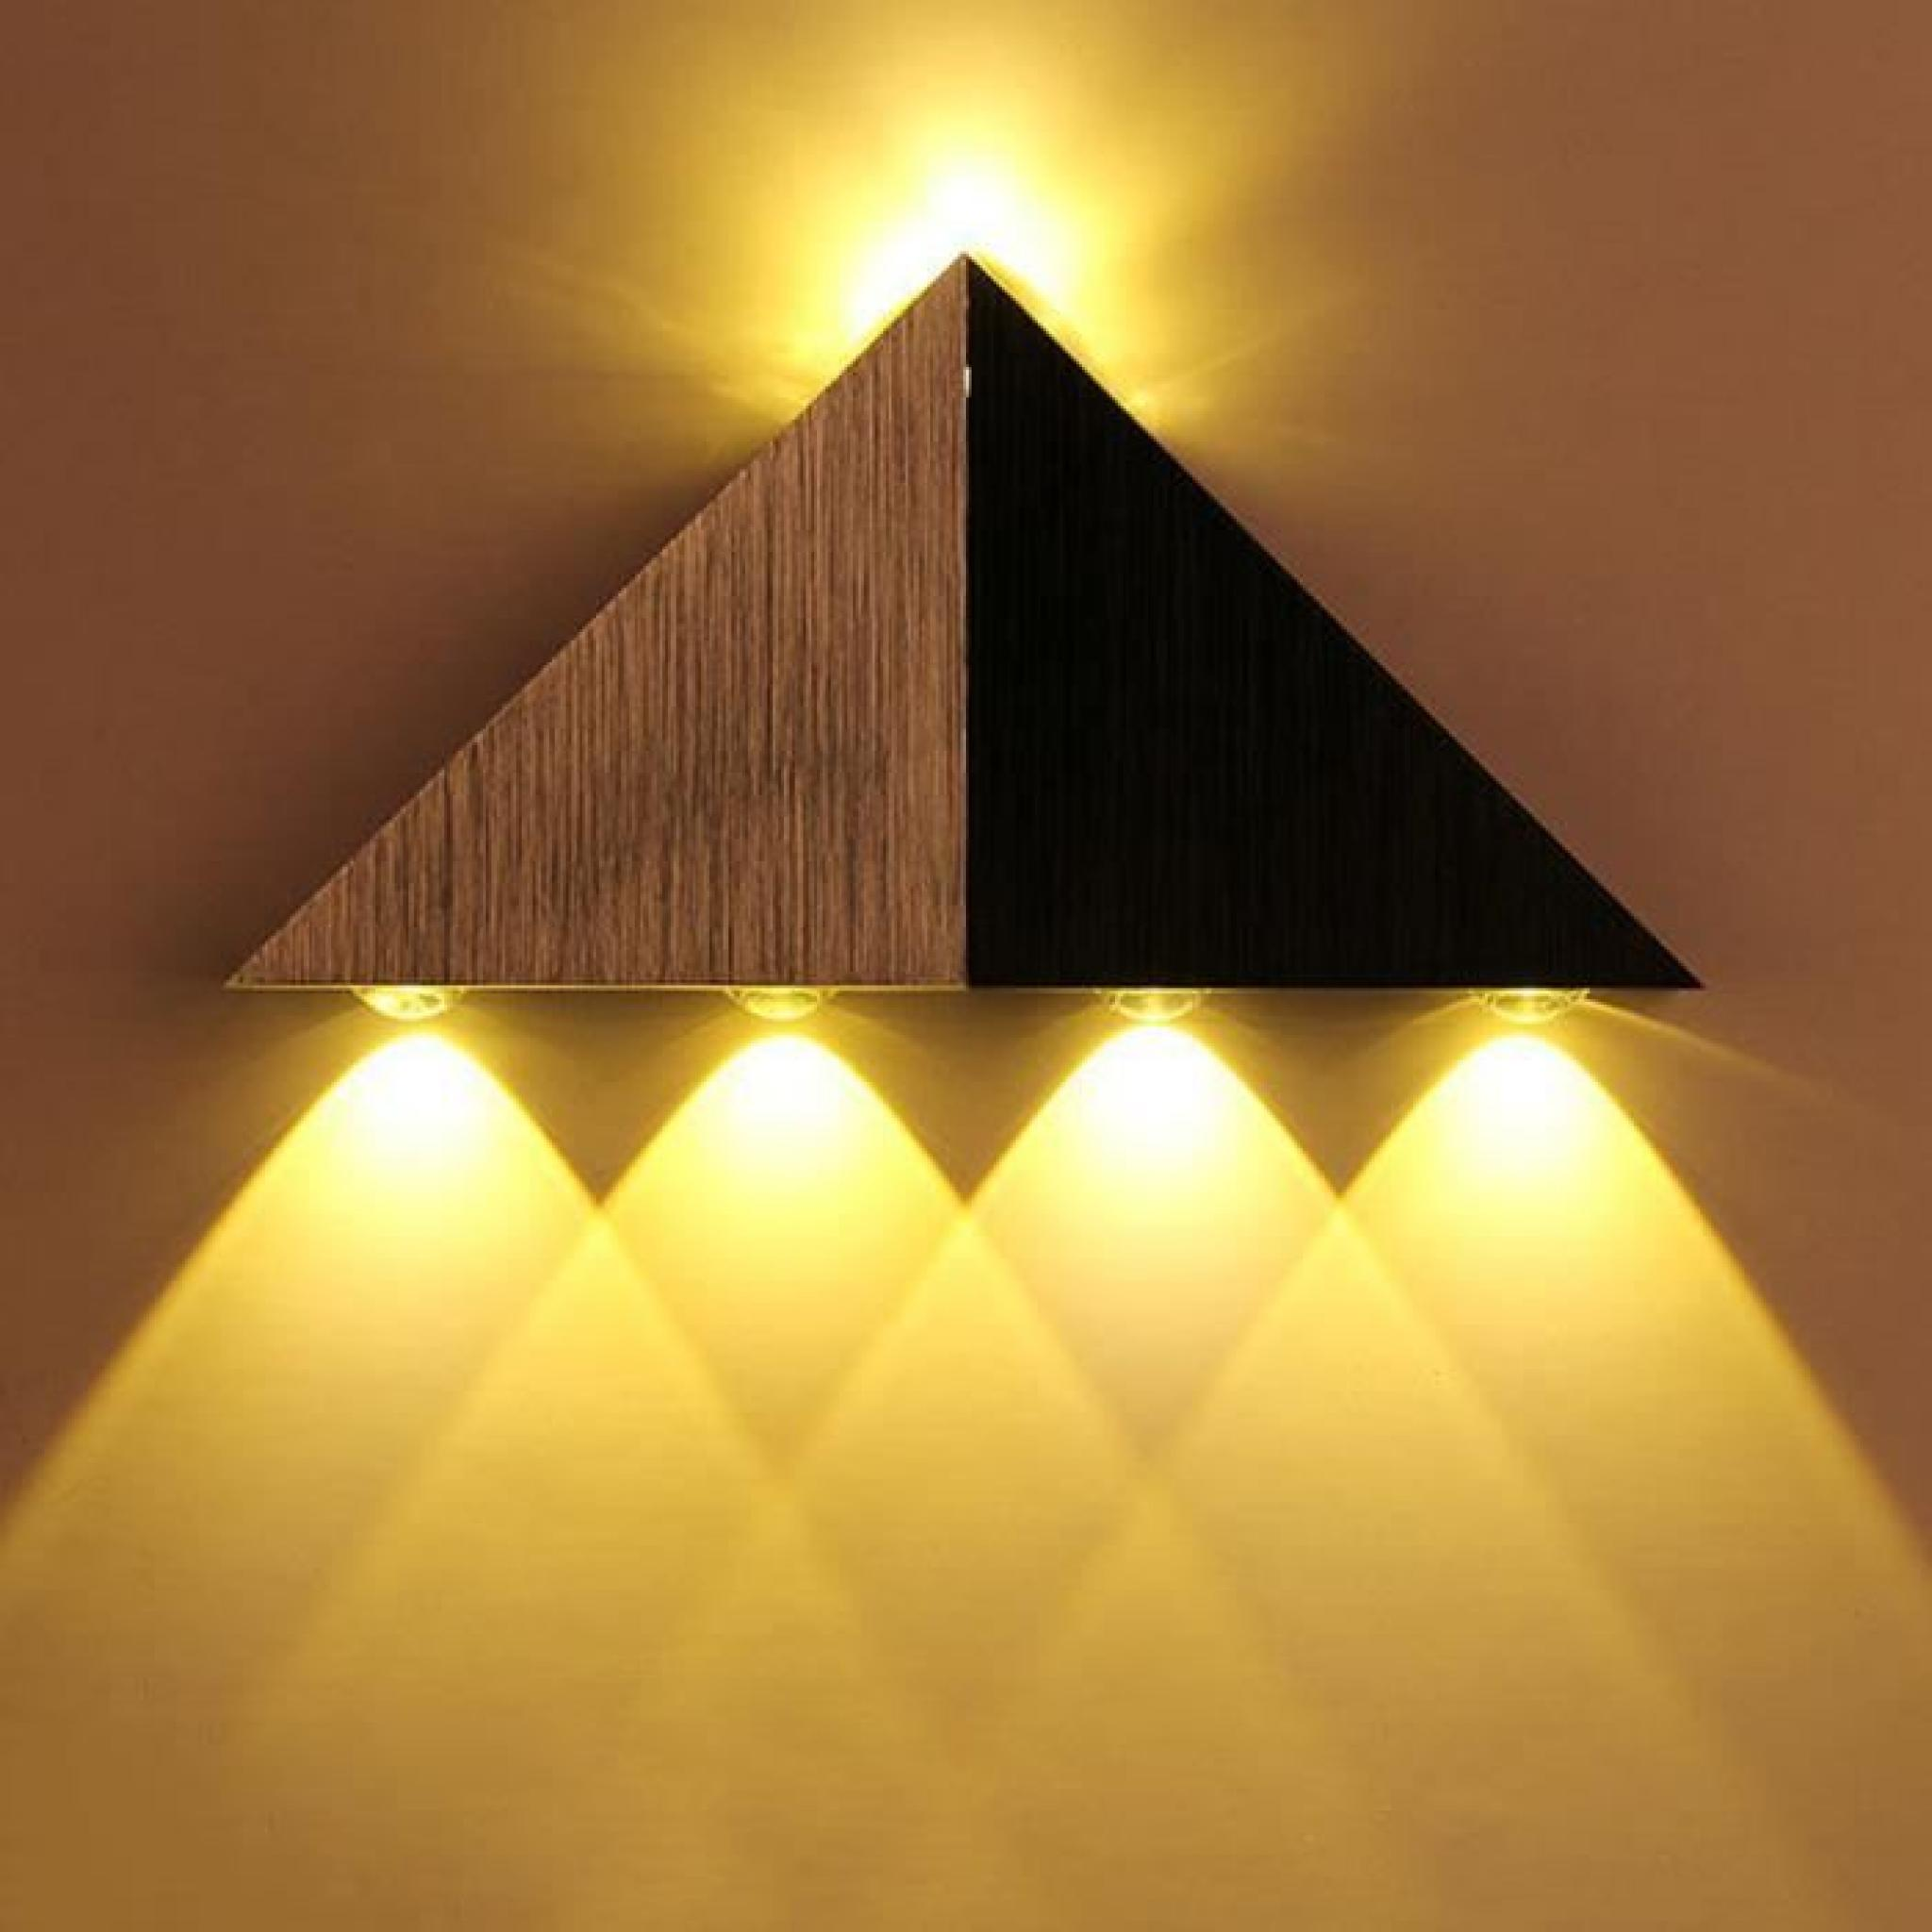 applique murale en aluminium 5w lampe led triangle de mur. Black Bedroom Furniture Sets. Home Design Ideas